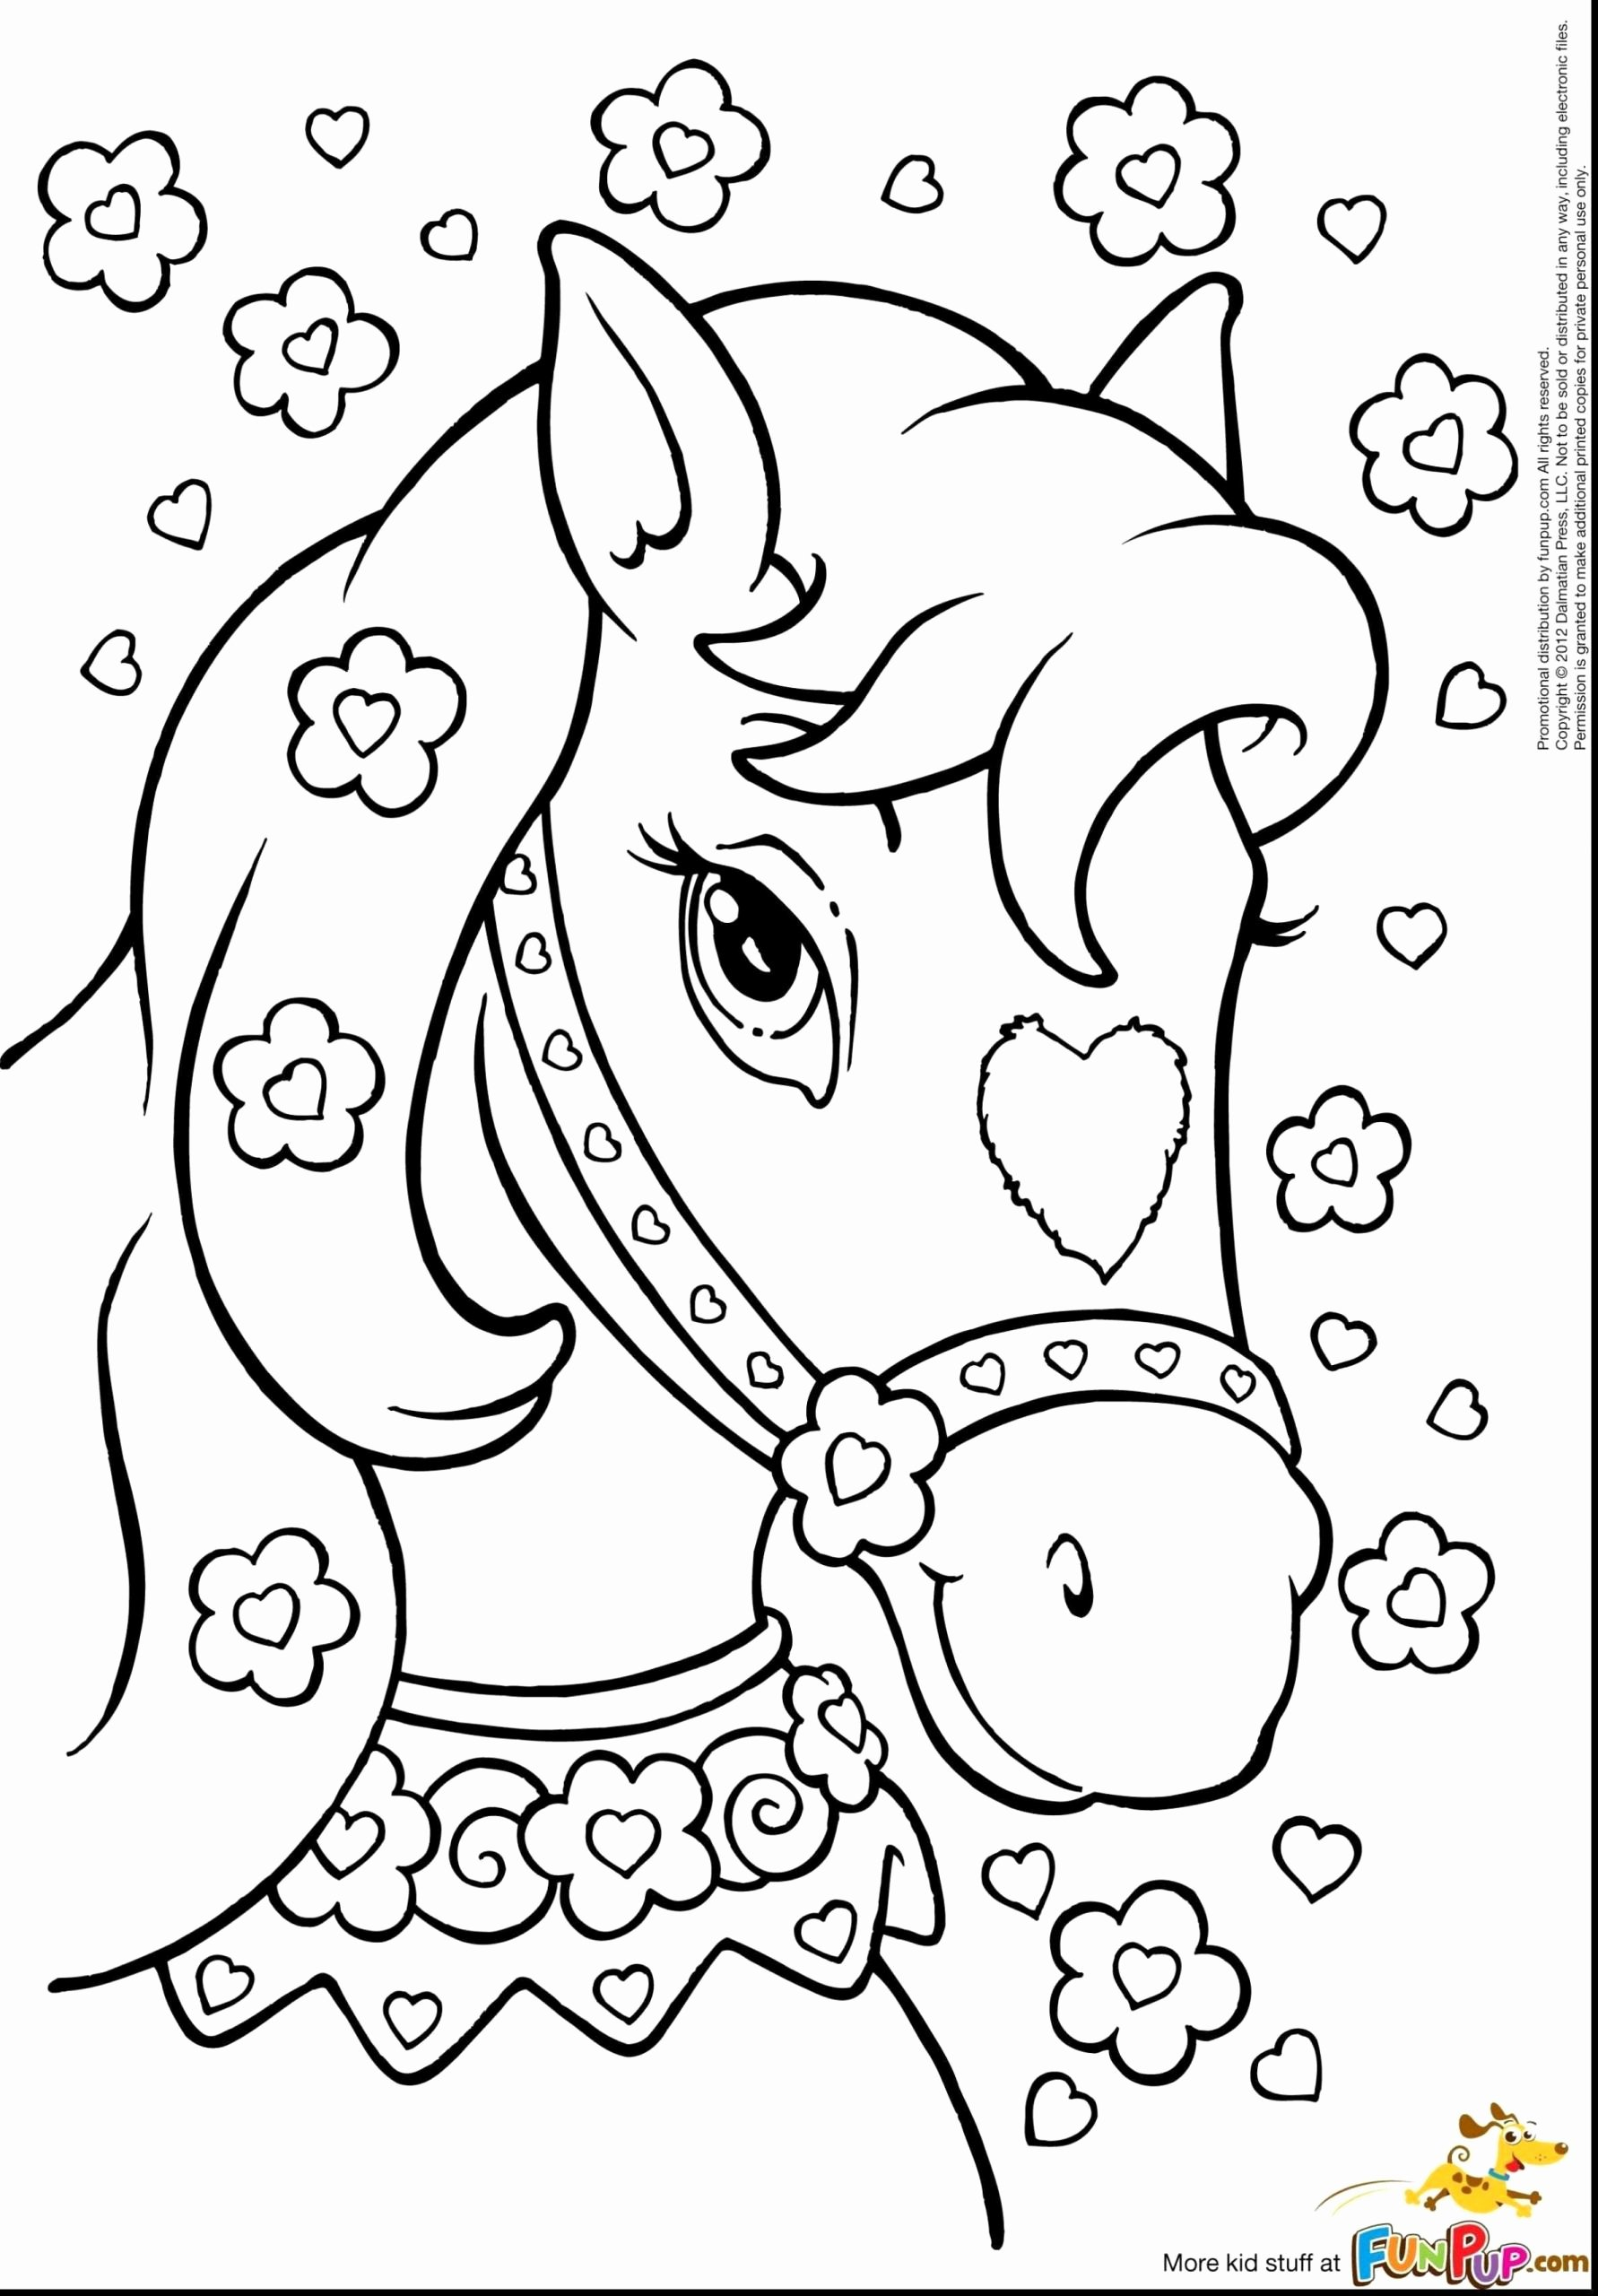 Free Coloring Worksheets for Preschoolers Fresh Free Coloring Sheets for Preschoolers Safe touches Line